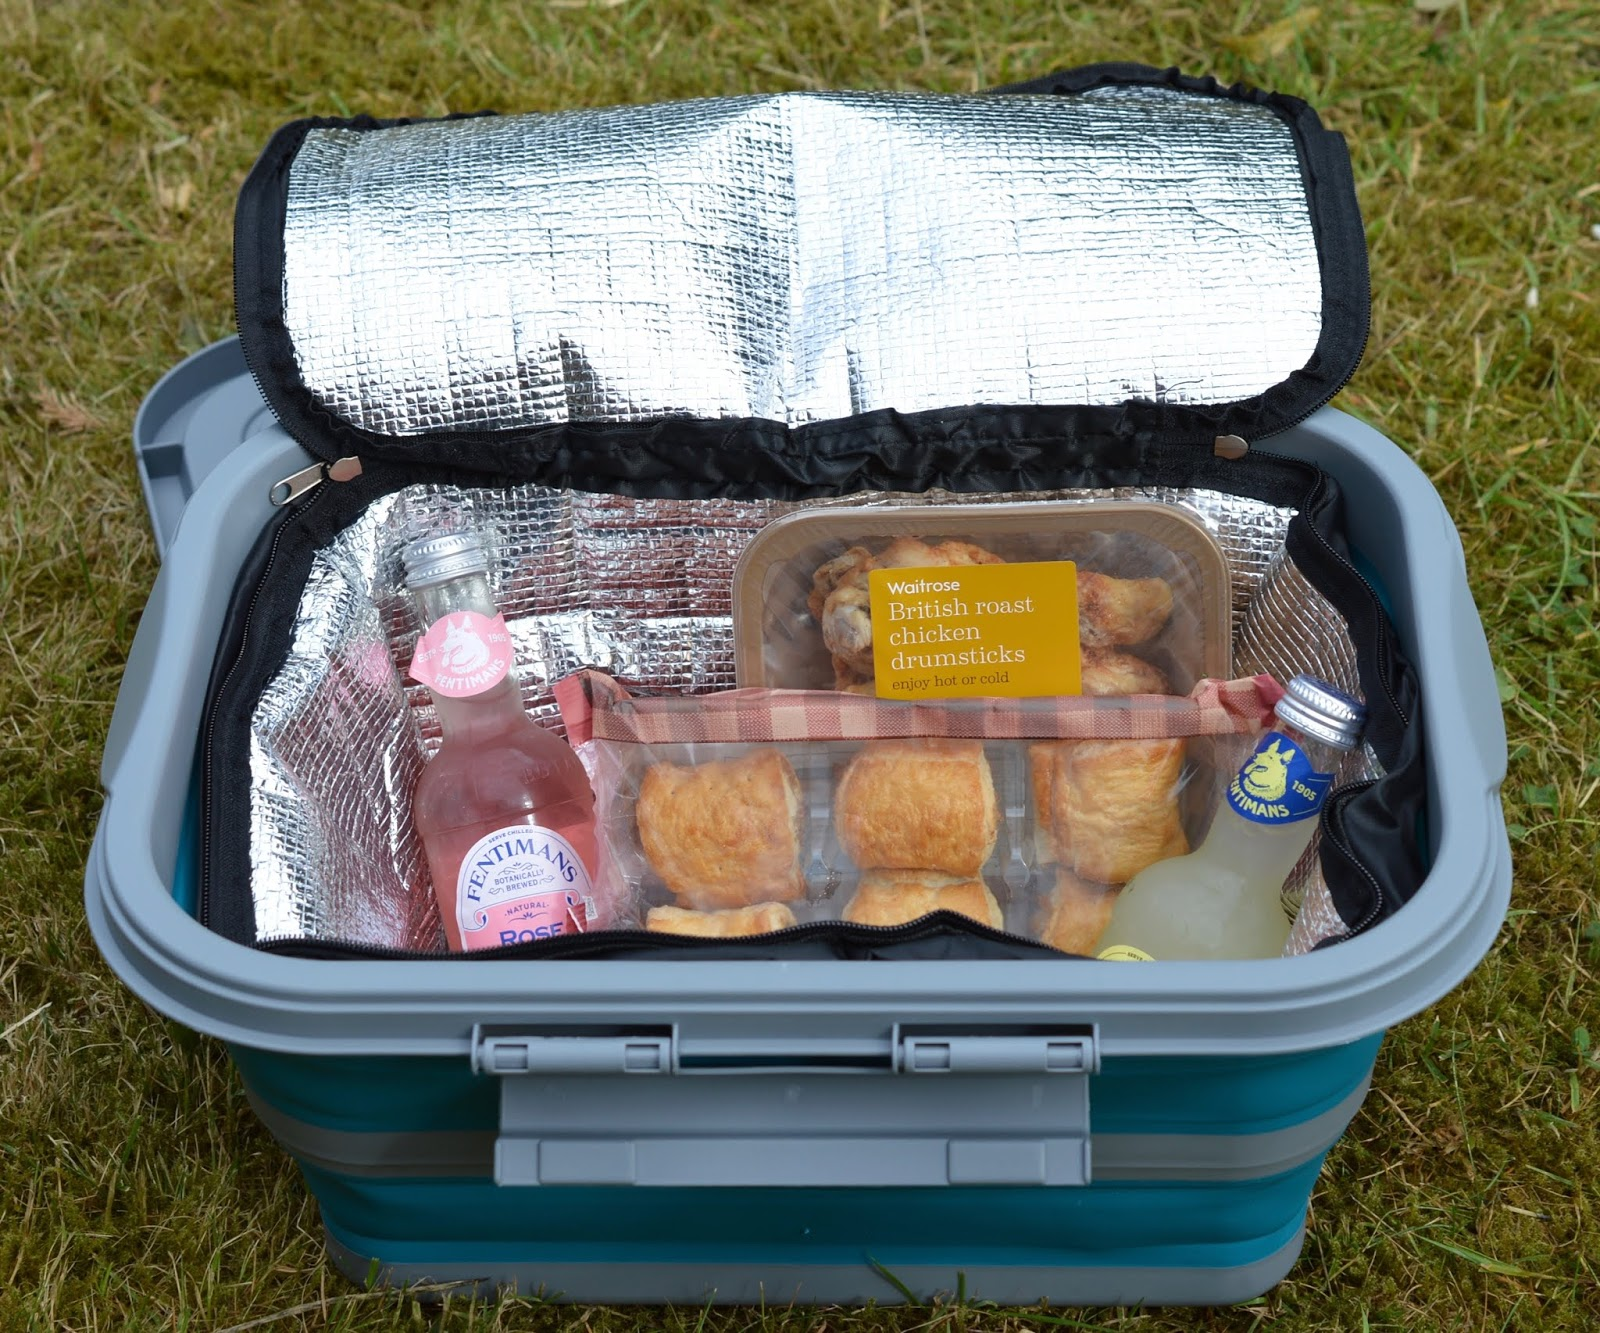 Collapsible picnicware by Summit - Review & Demo #NationalPicnicWeek